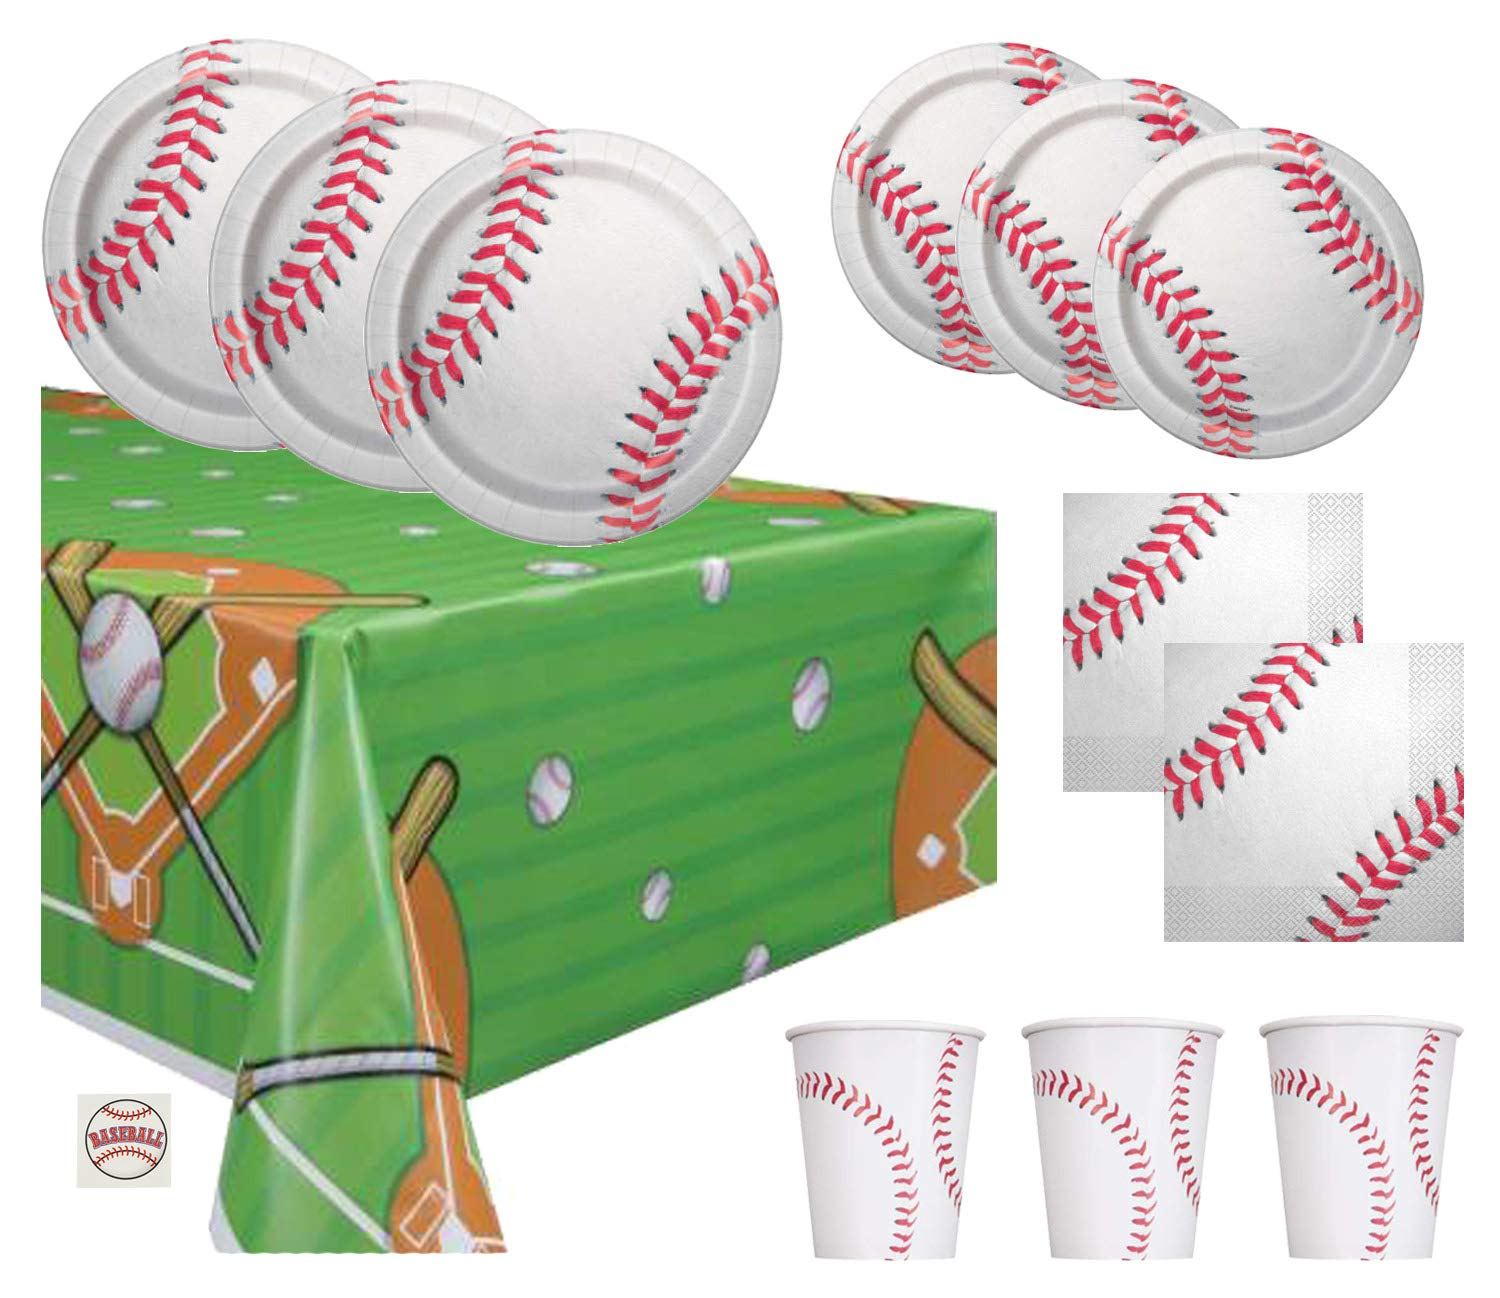 Baseball Theme Party Supplies Set - Plates, Cups, Napkins, Tablecloth Decoration (Serves 16) by Baseball